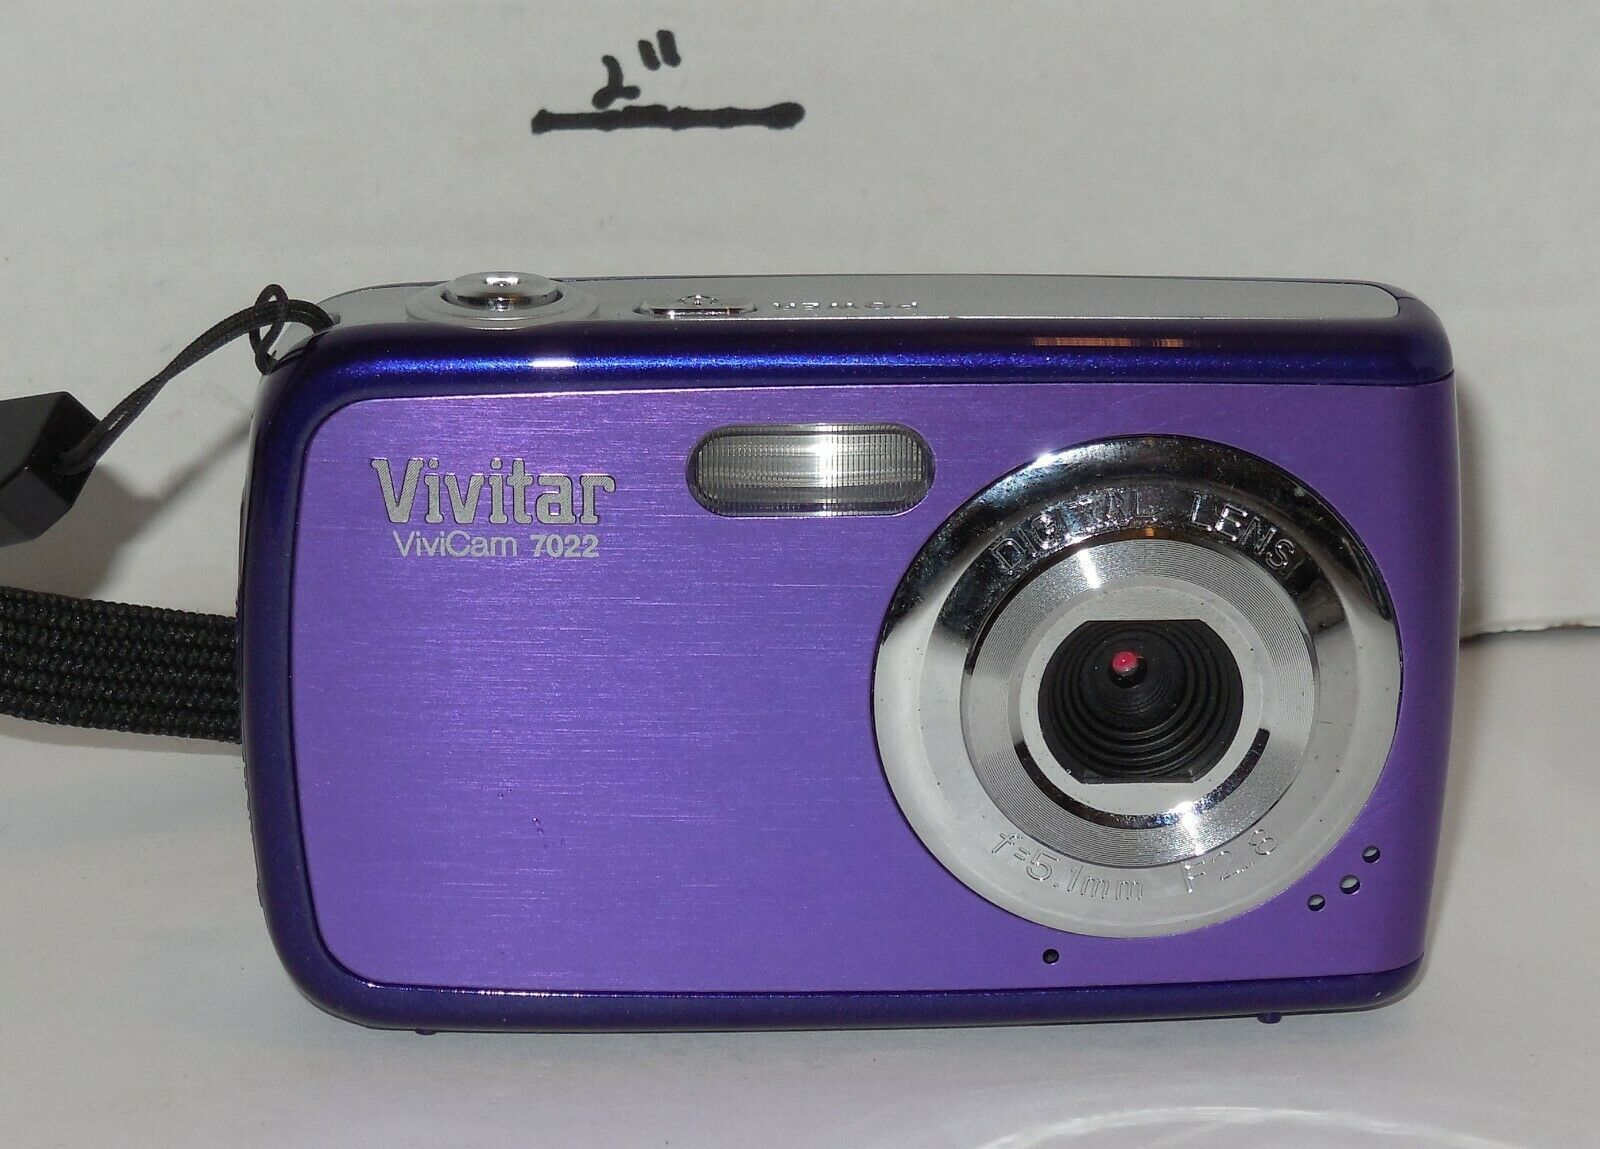 Primary image for Vivitar ViviCam 7022 7.1MP Digital Camera - Grape